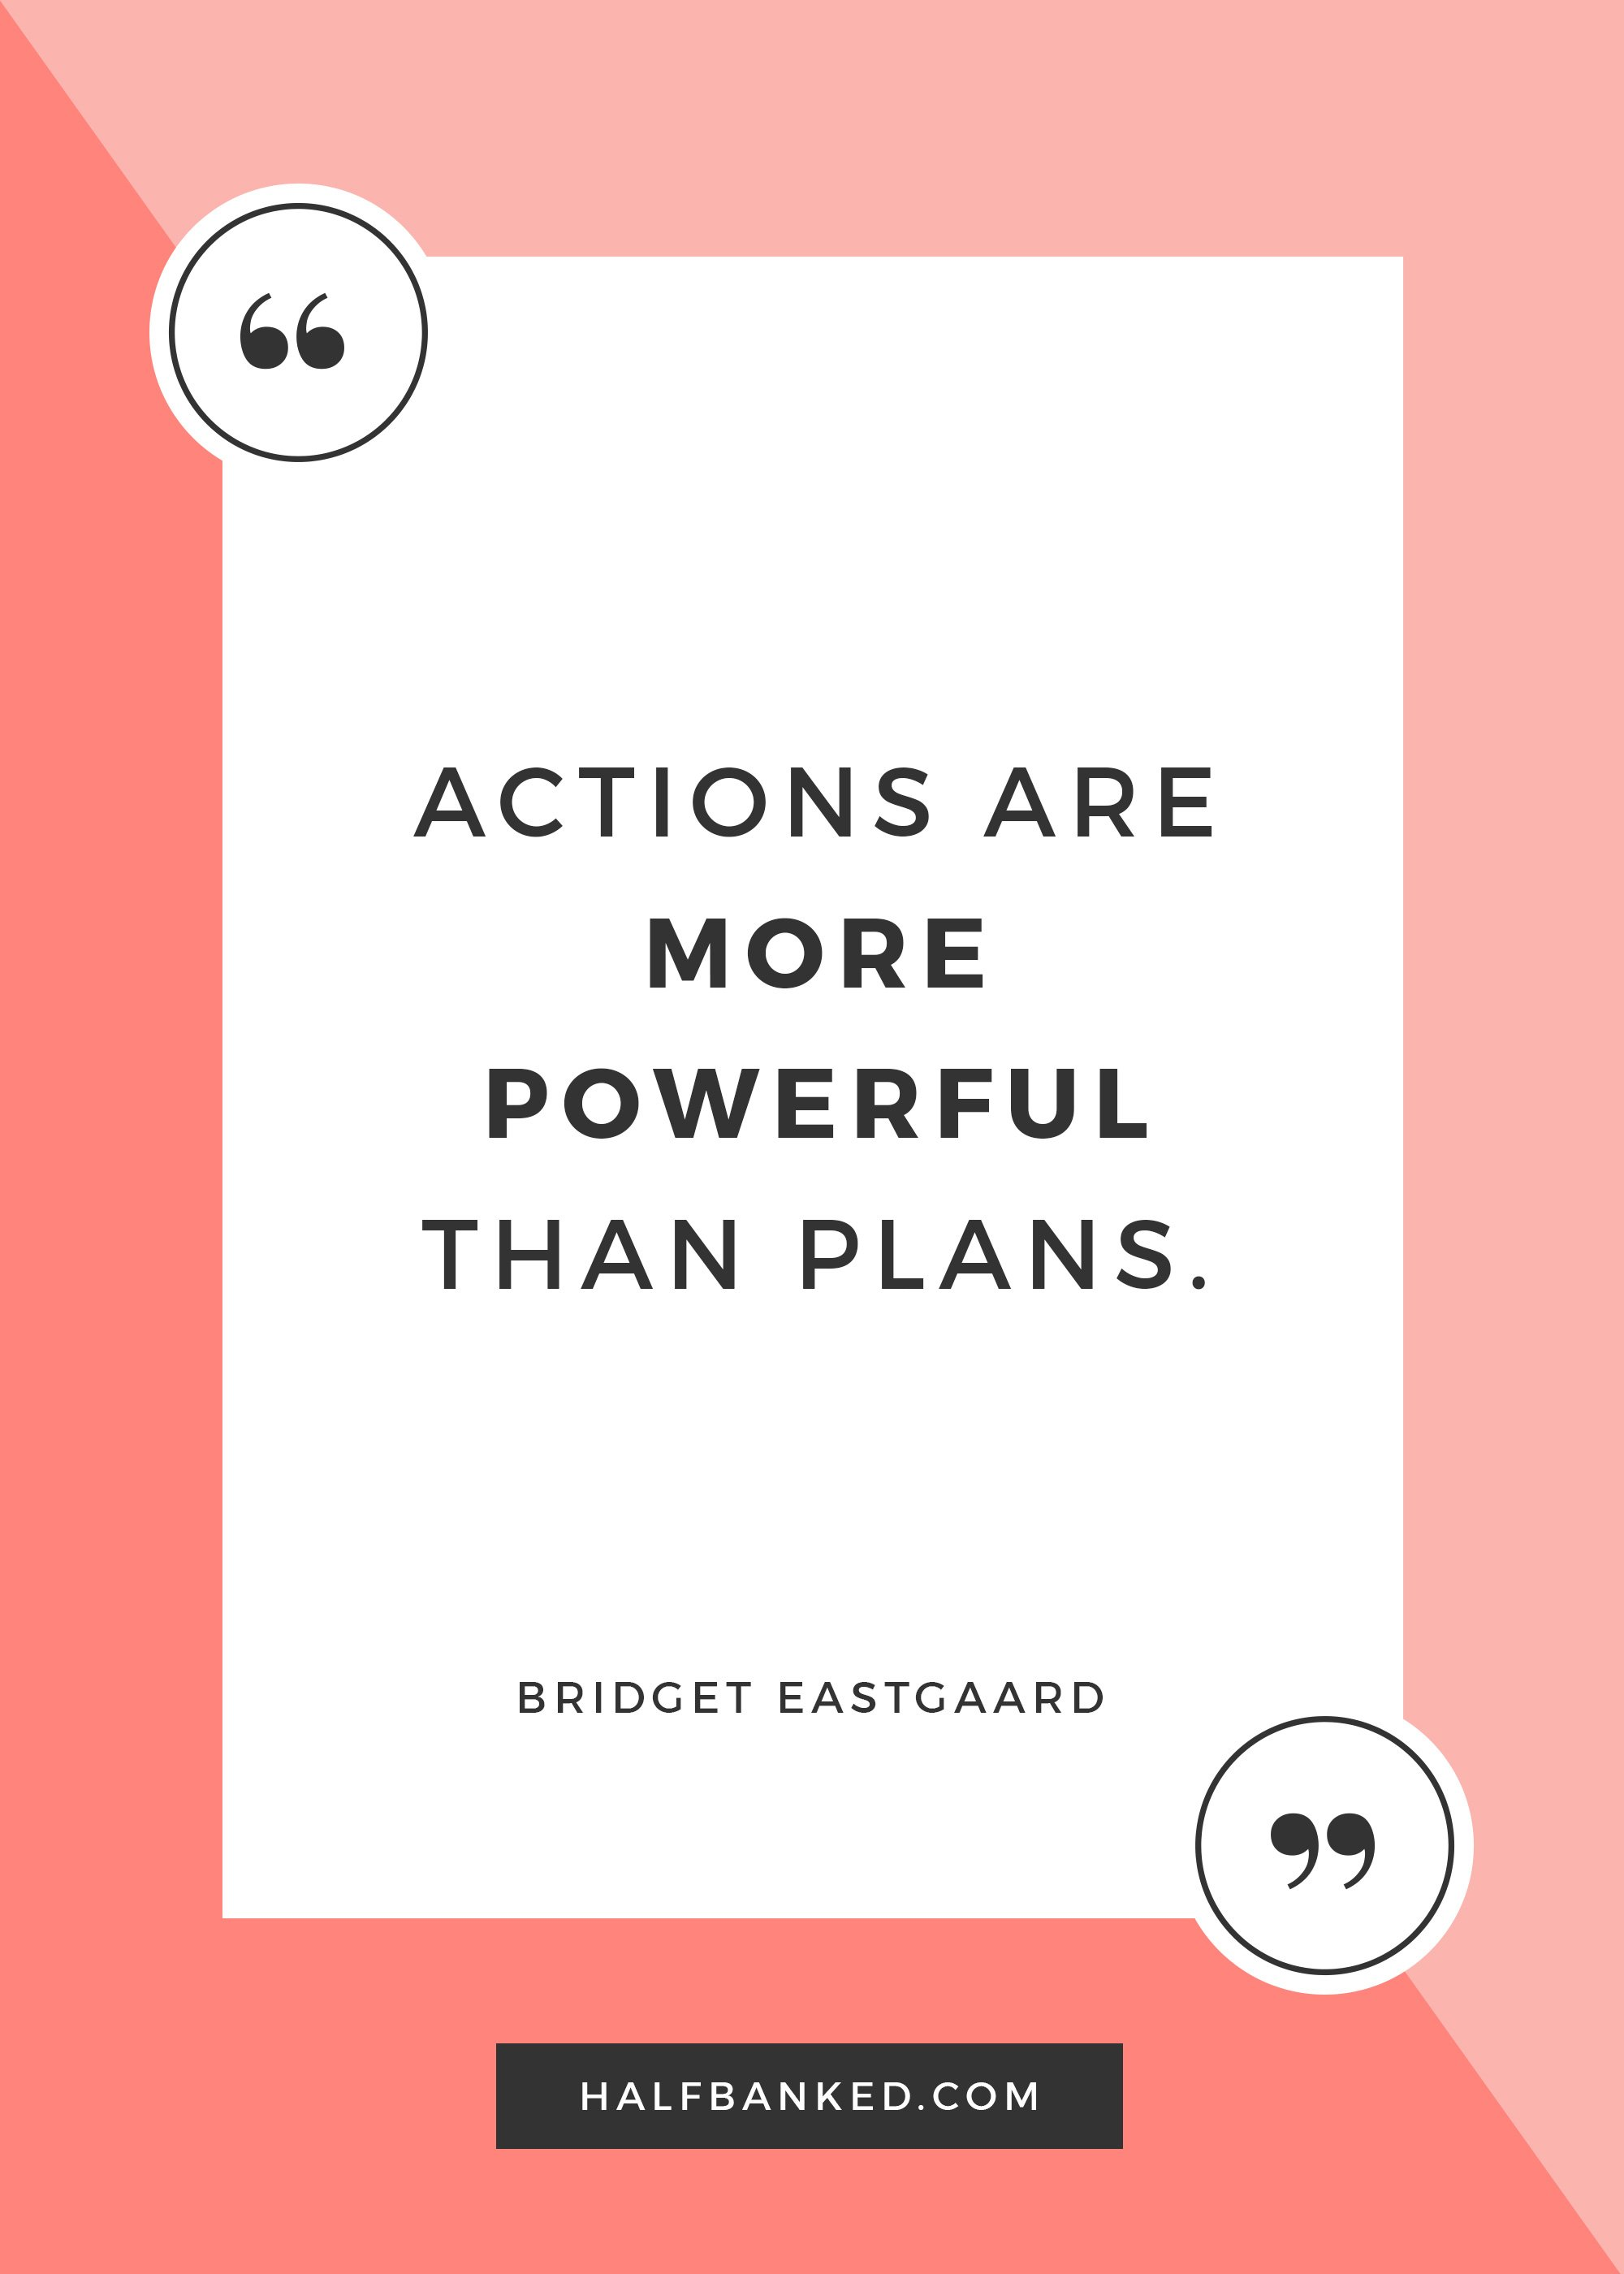 """Actions are more powerful than plans."" - Bridget Eastgaard"